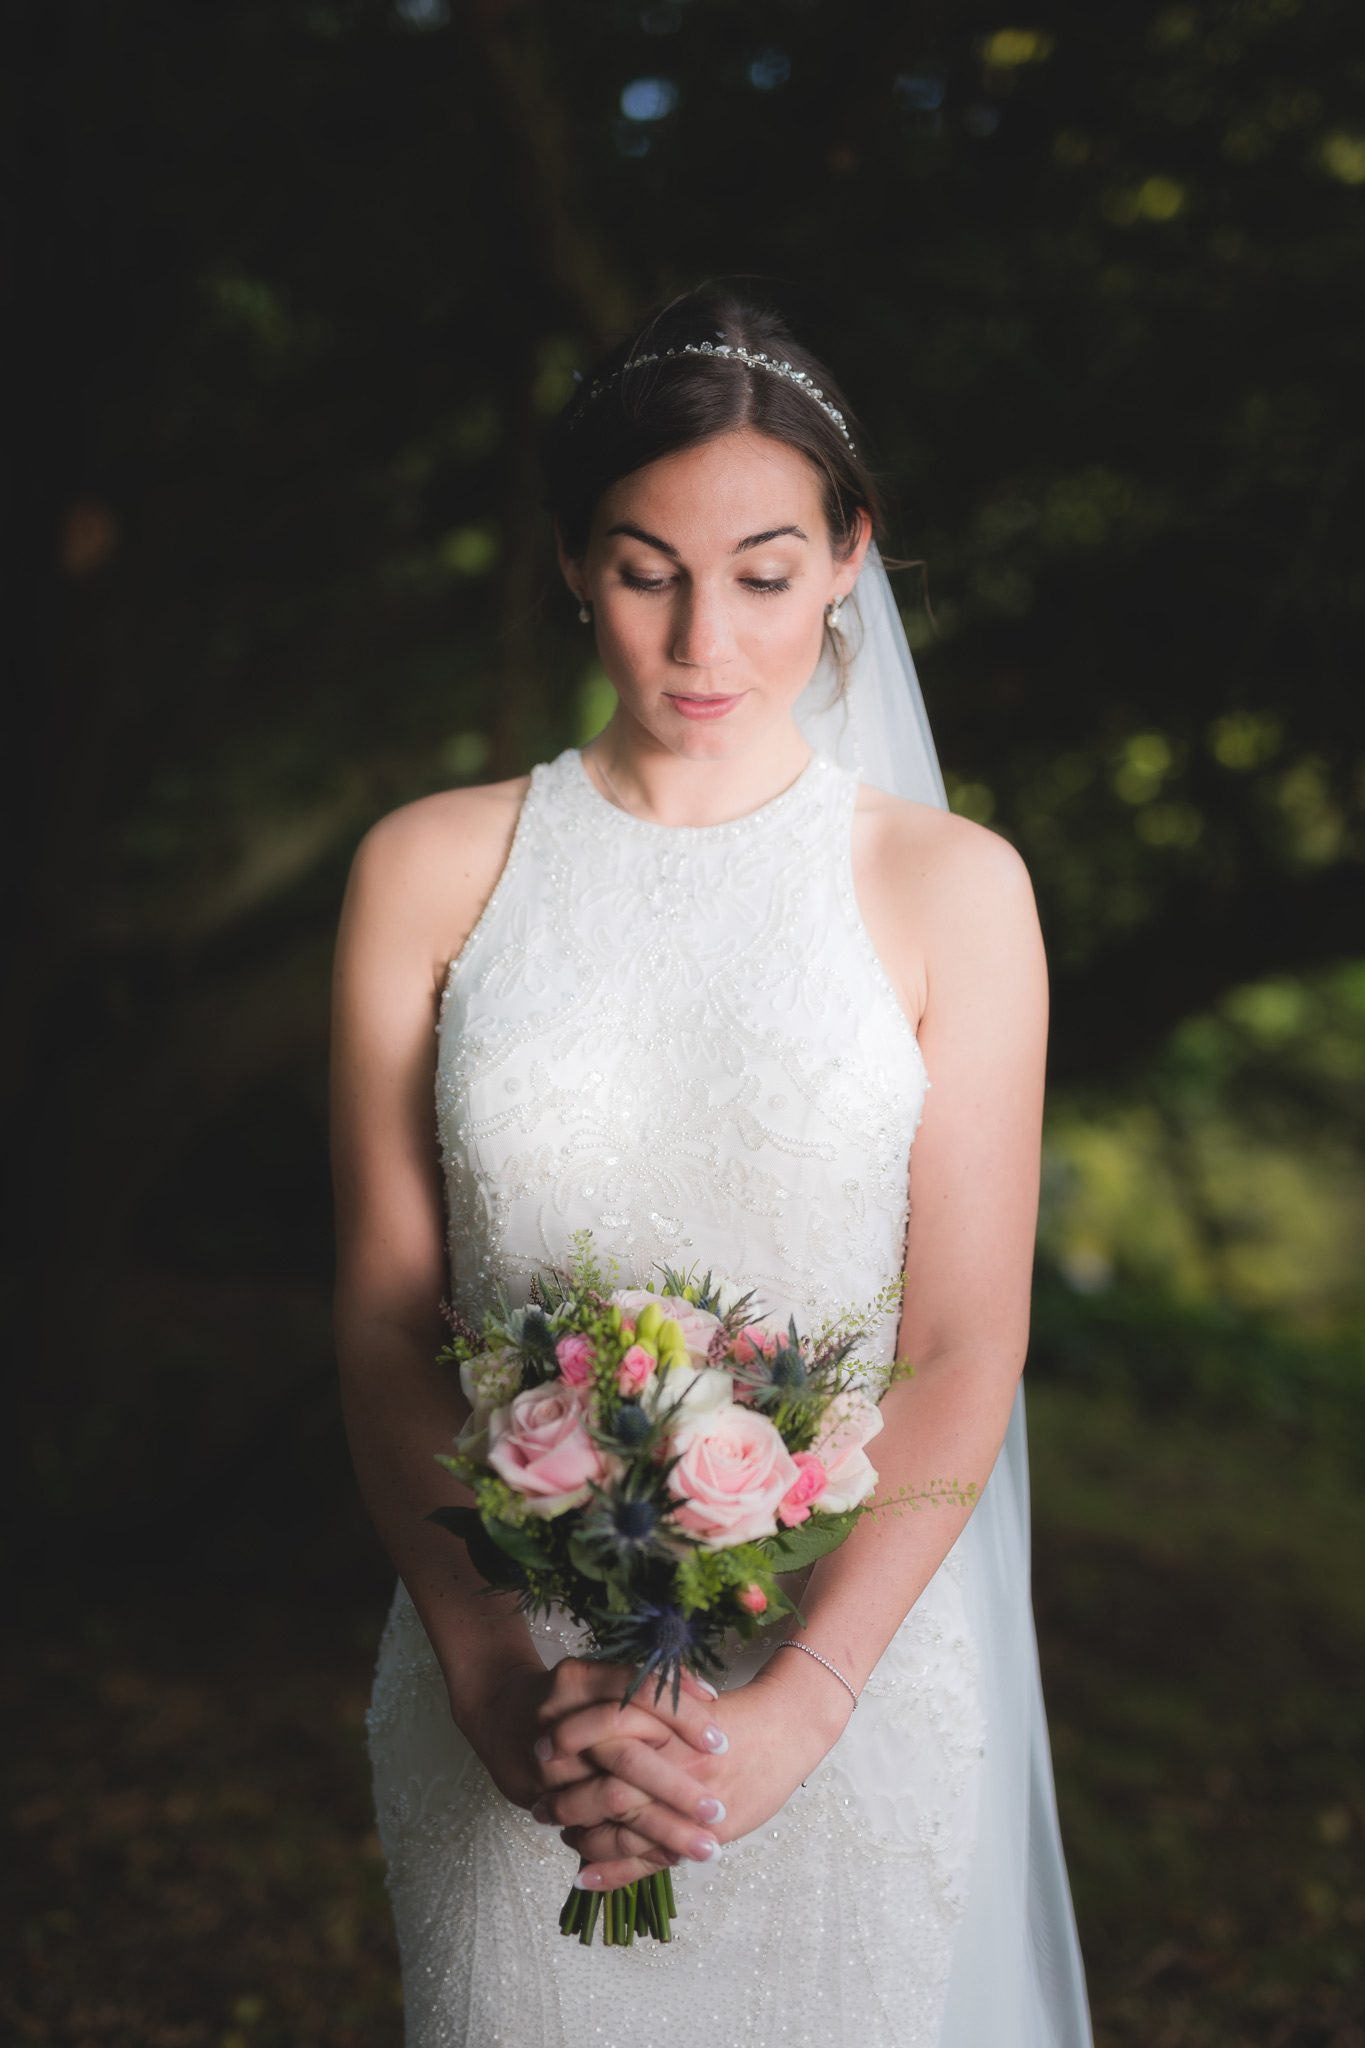 Buxton Wedding Photographer - Bridal Portrait